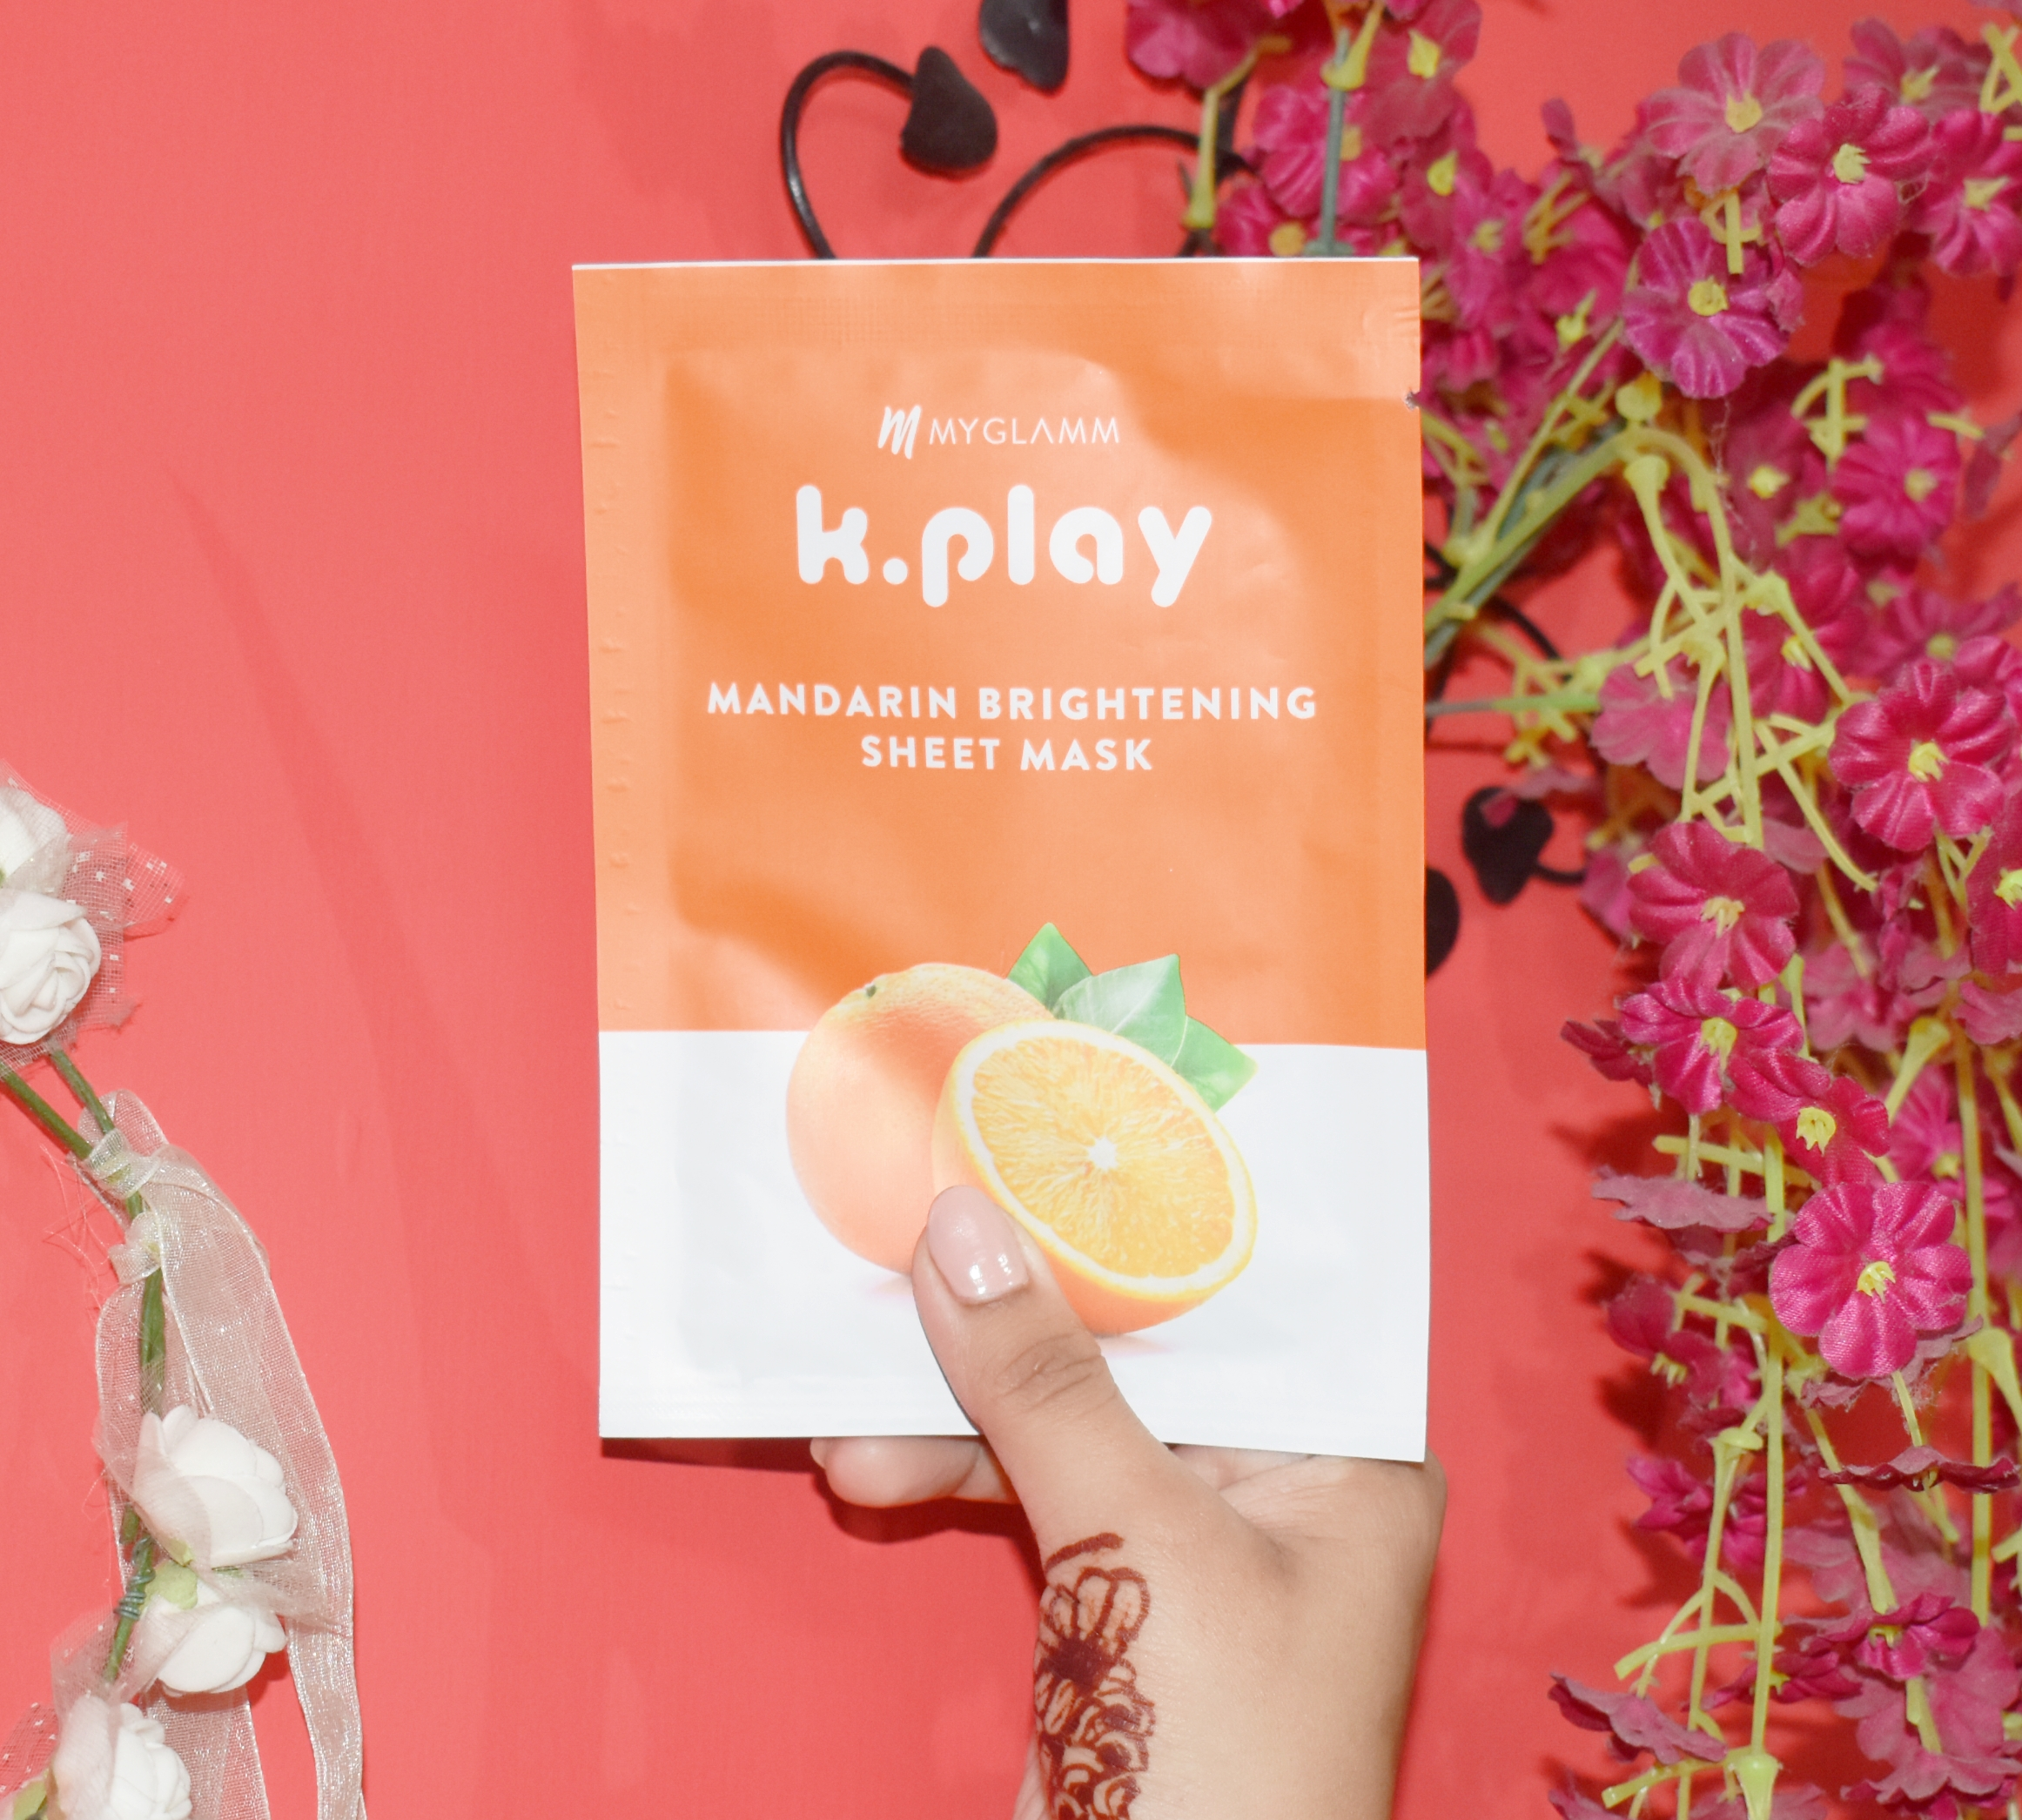 MyGlamm K.Play Mandarin Brightening Sheet Mask-Gives intense hydration.-By ammaraazmi